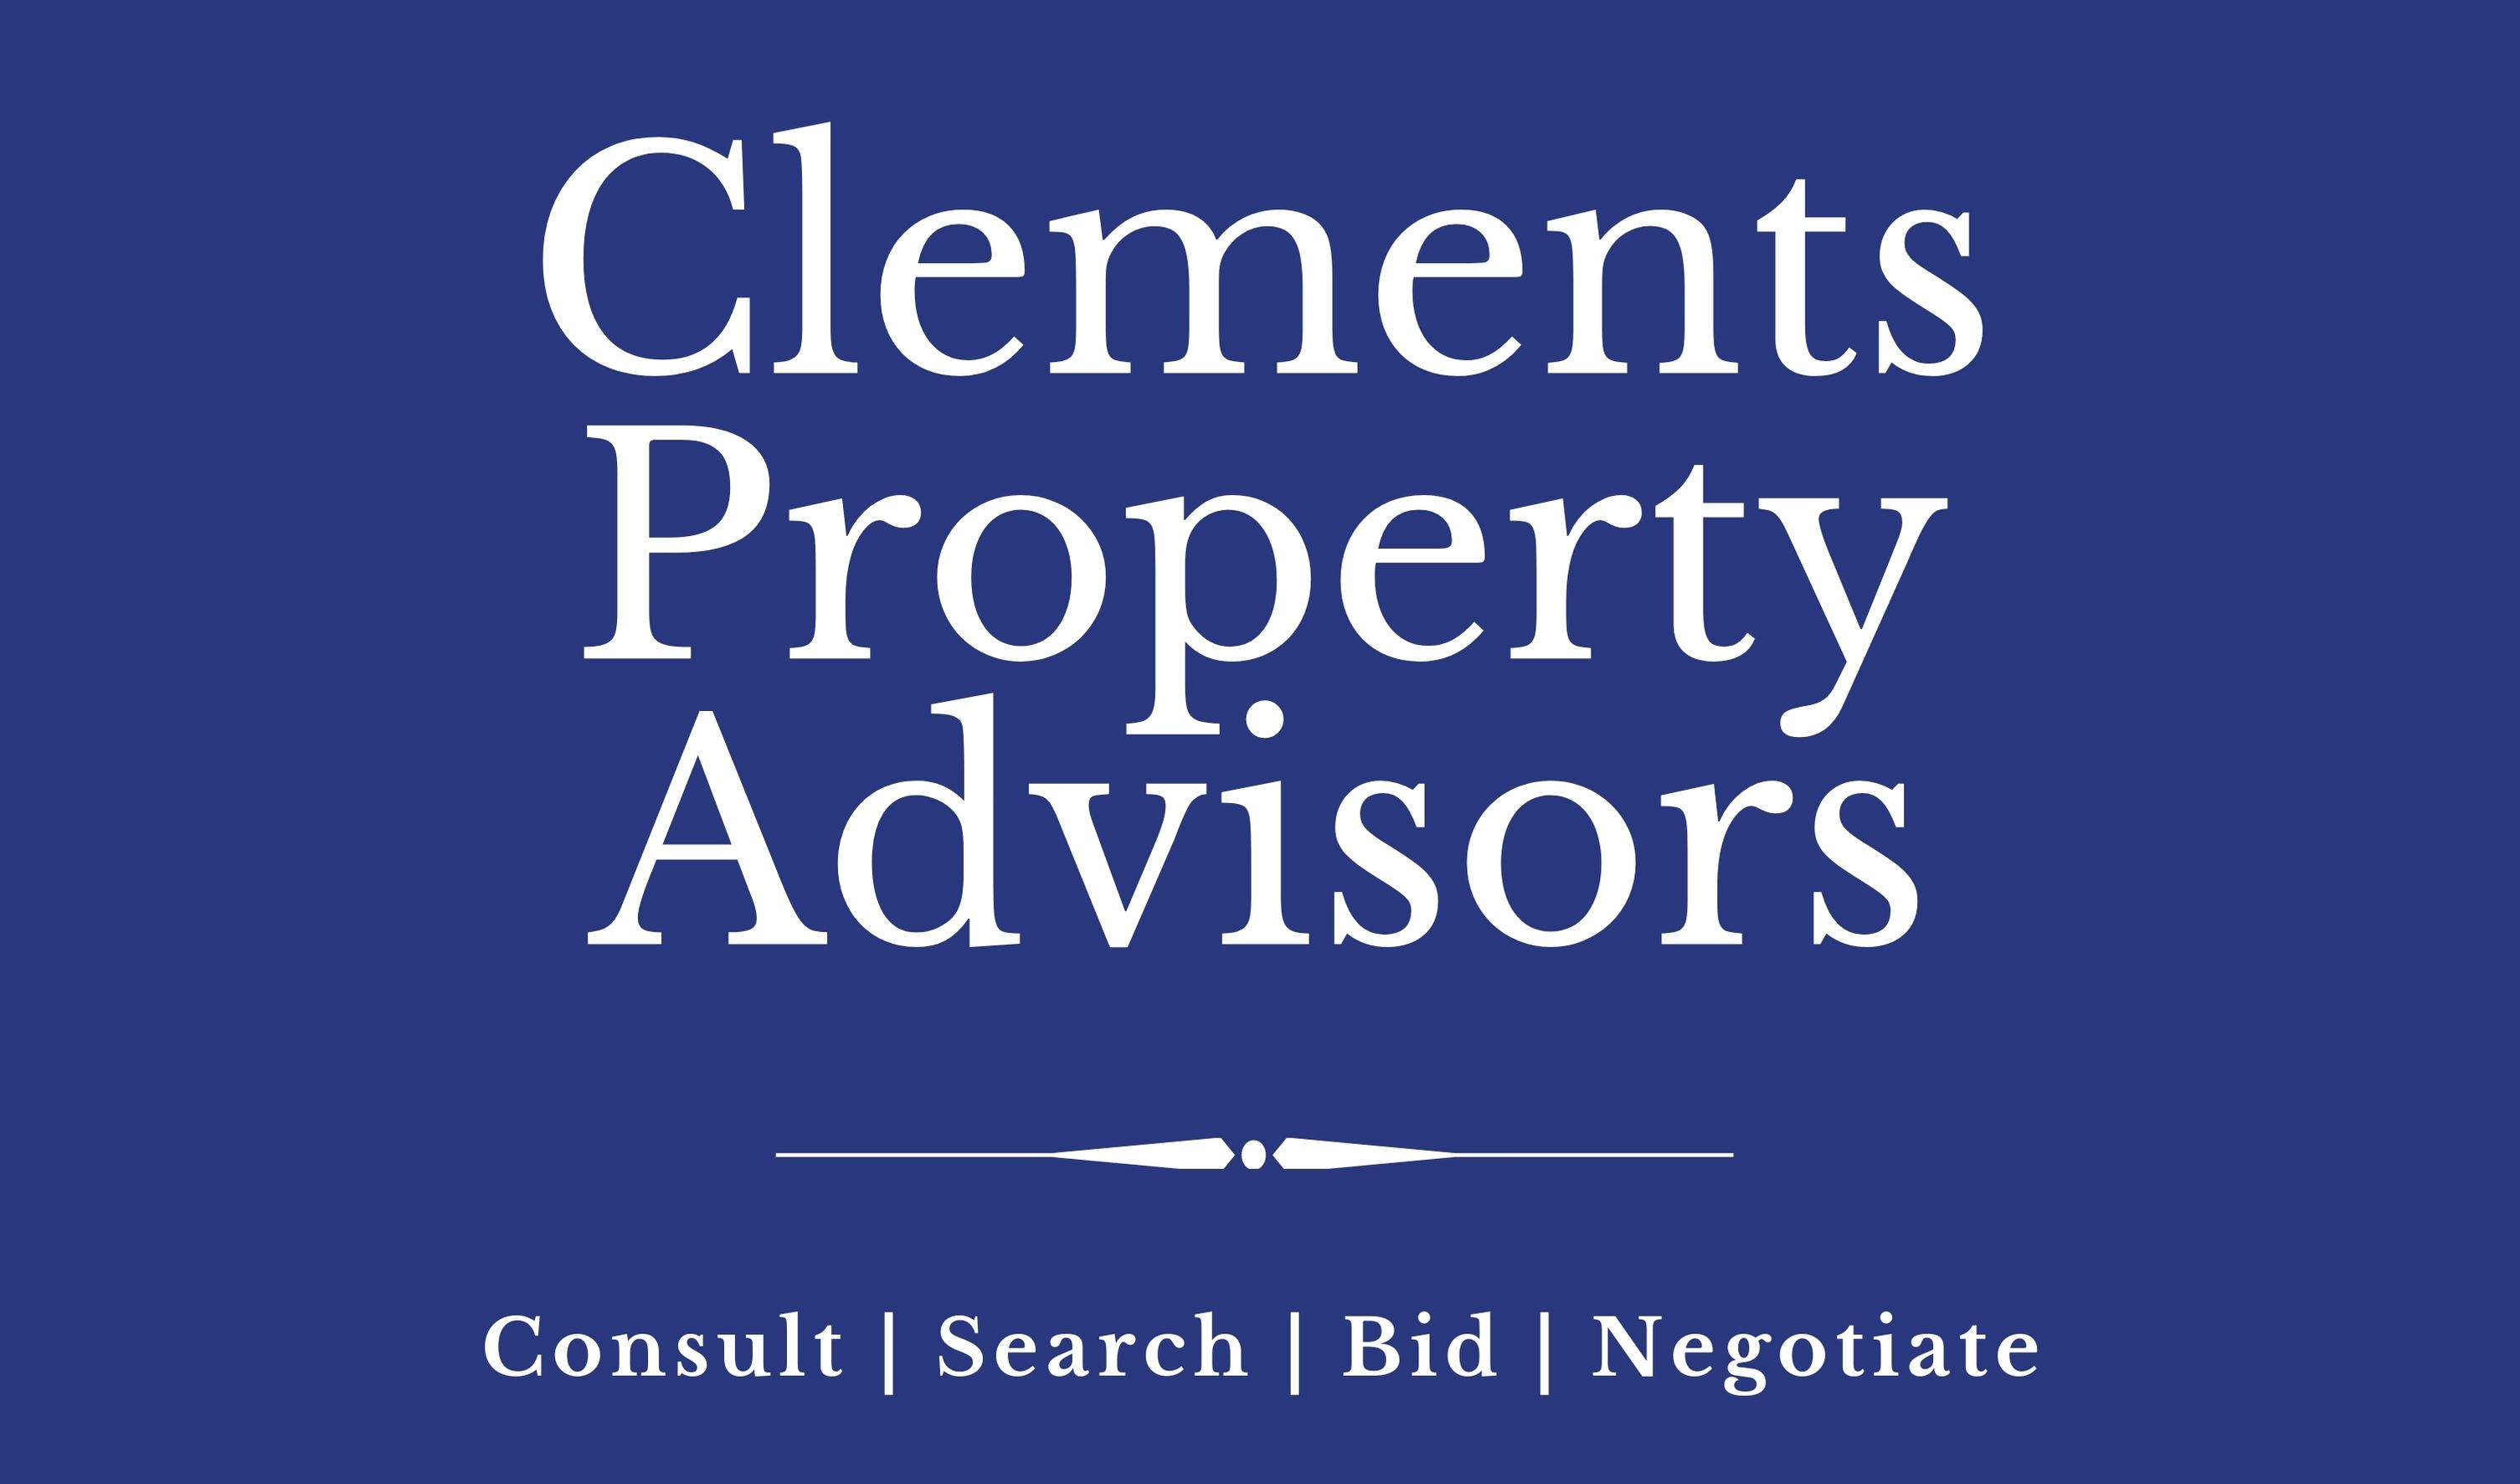 Clements Property Advisors